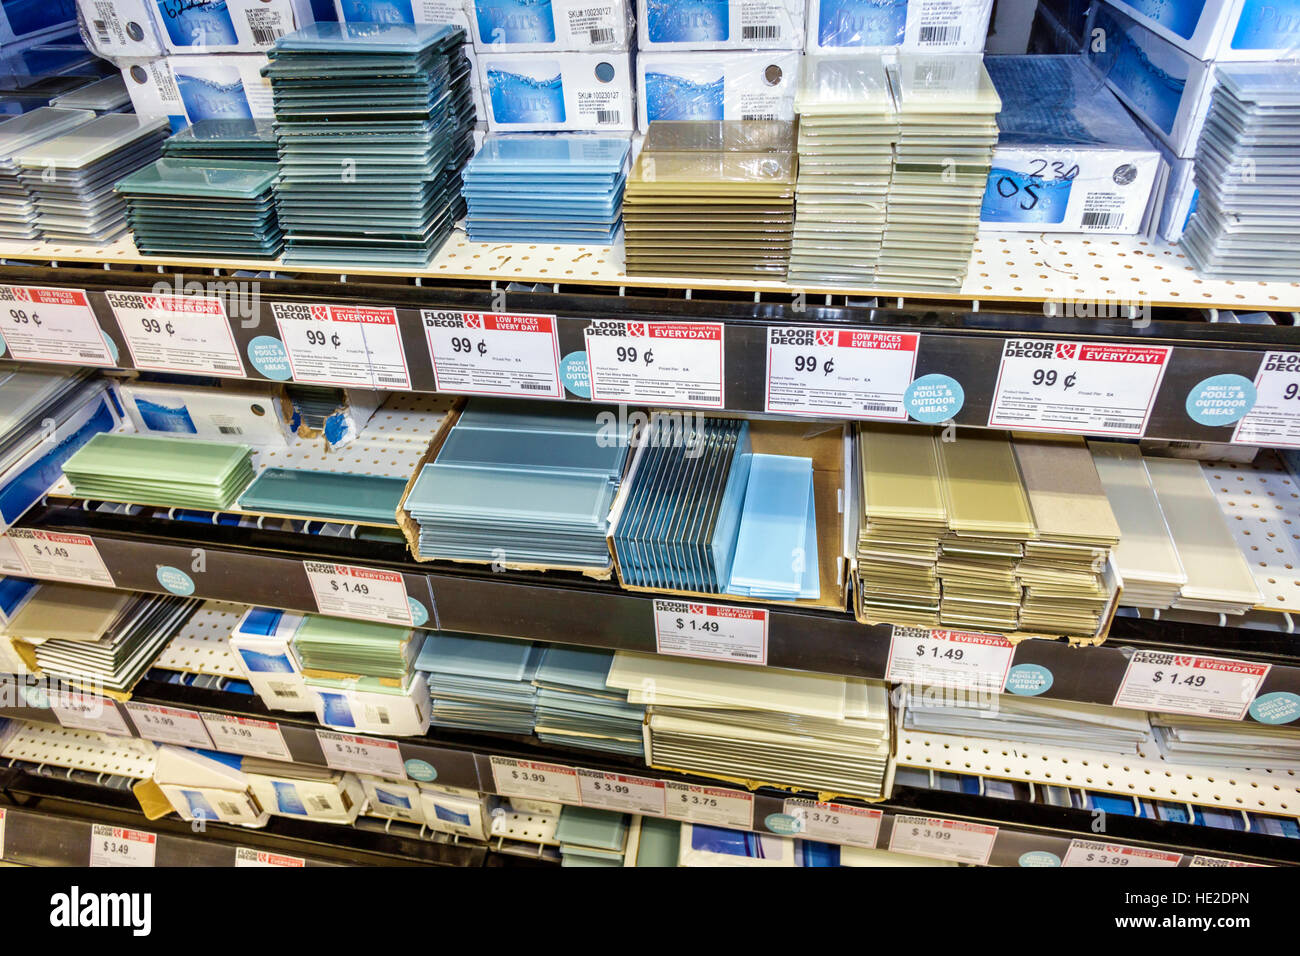 Miami Florida Floor Decor Glass Tile Store Center Centre Samples